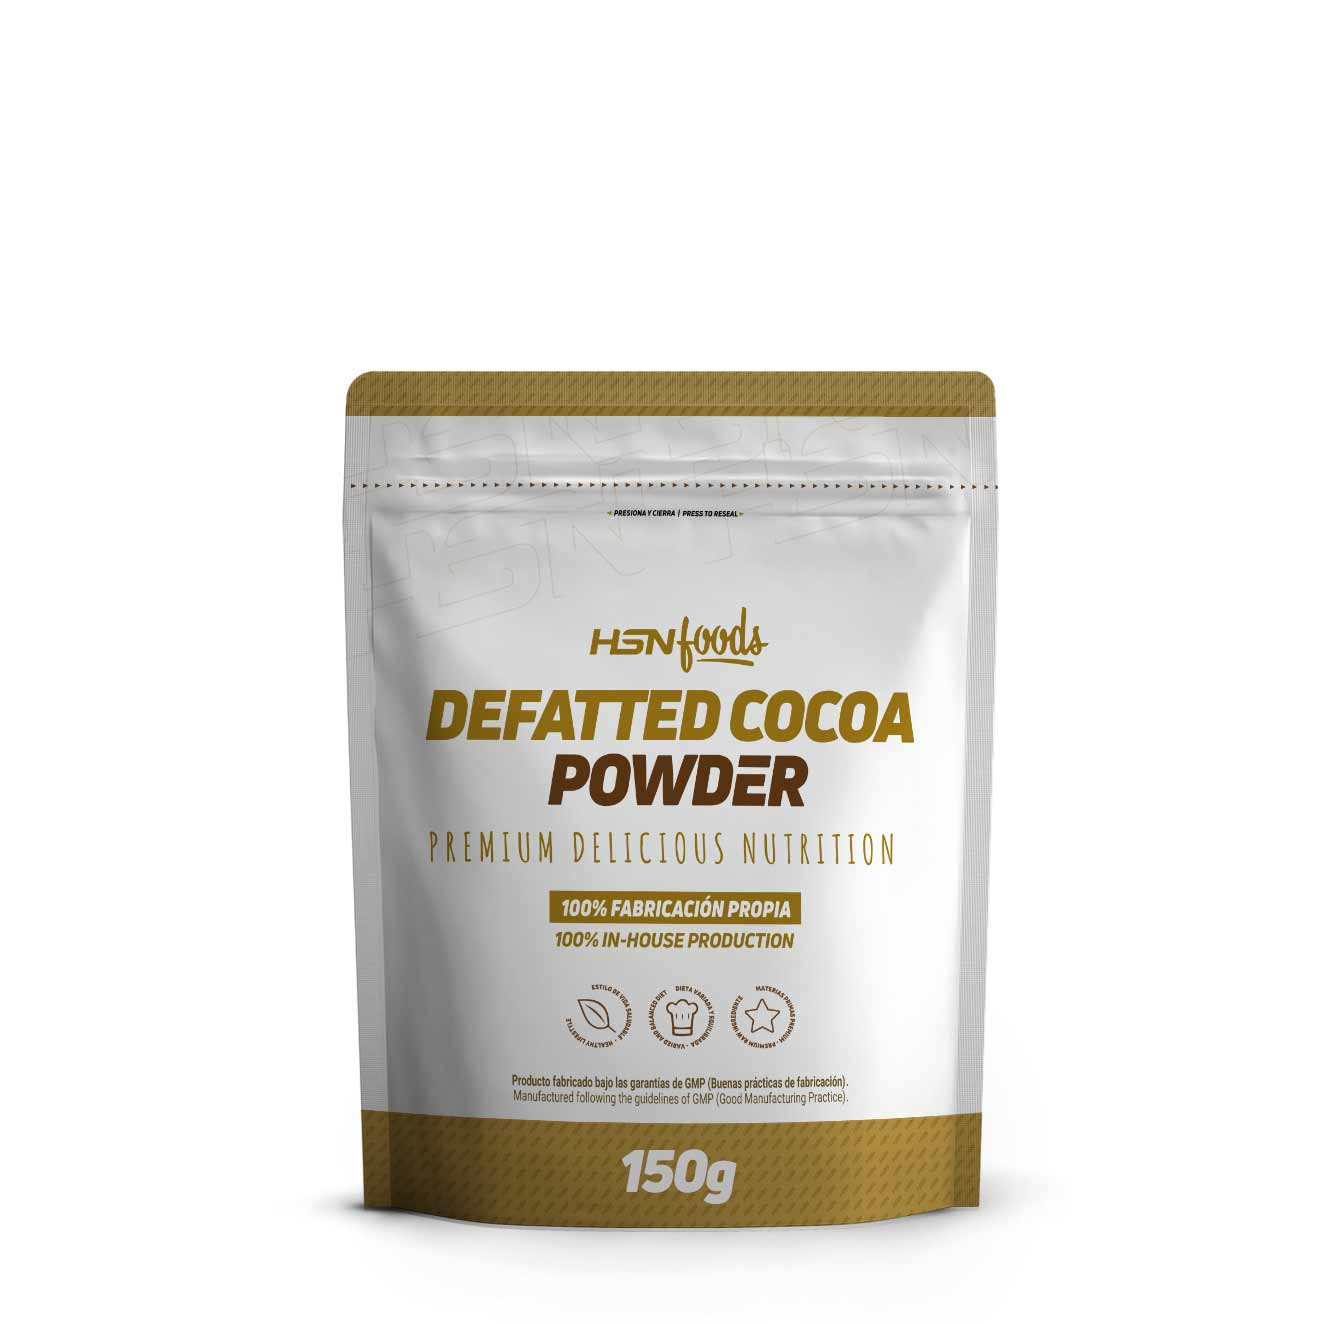 DEFATTED COCOA POWDER 150g